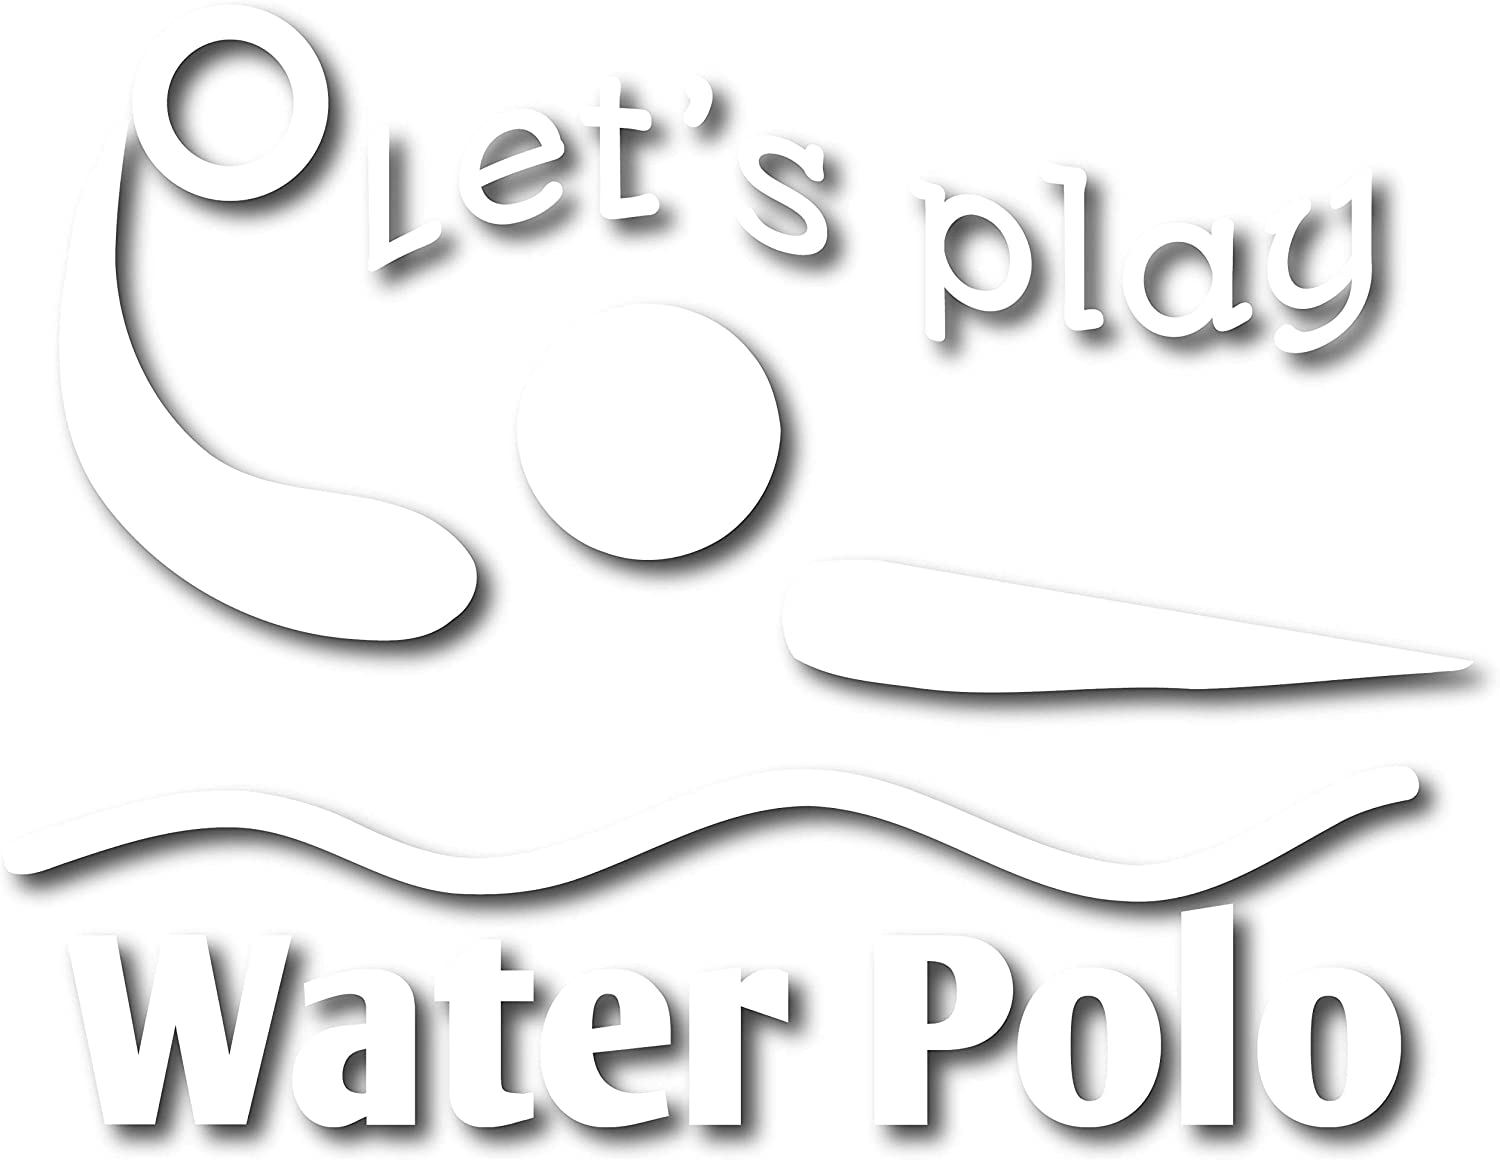 "4 All Times Let's Play Water Polo Automotive Car Decal for Cars, Trucks, Laptops (5.0"" W x 3.8"" H)"